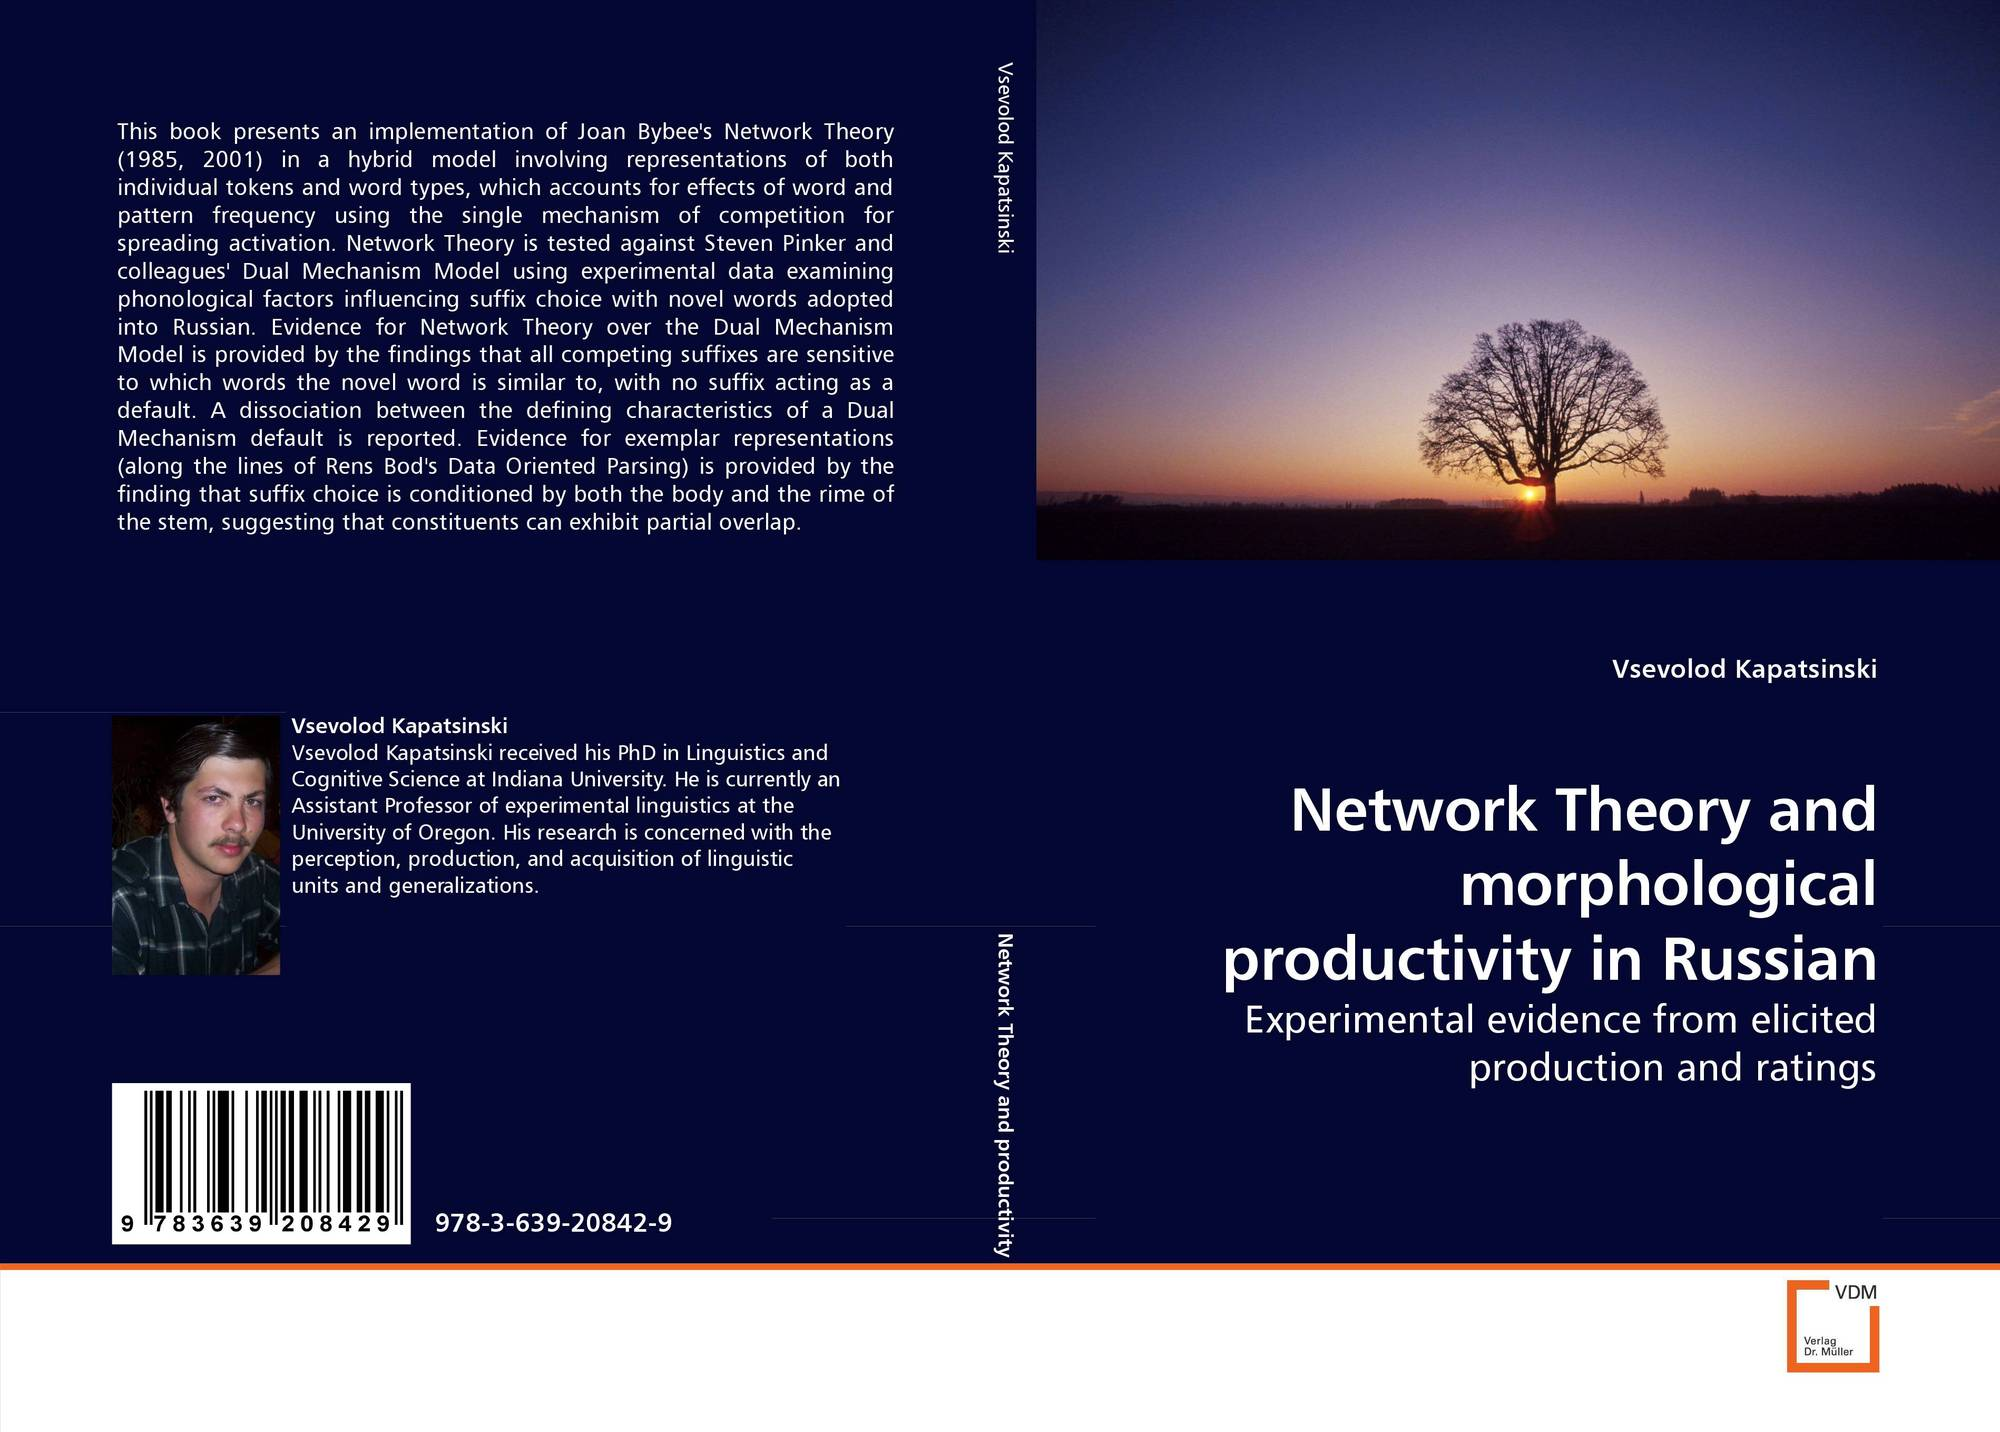 network theory Network theory, gate, gate lecture network theory, gate ee network theory, network theory for gate ece, gate study materials of network theory more play all share.